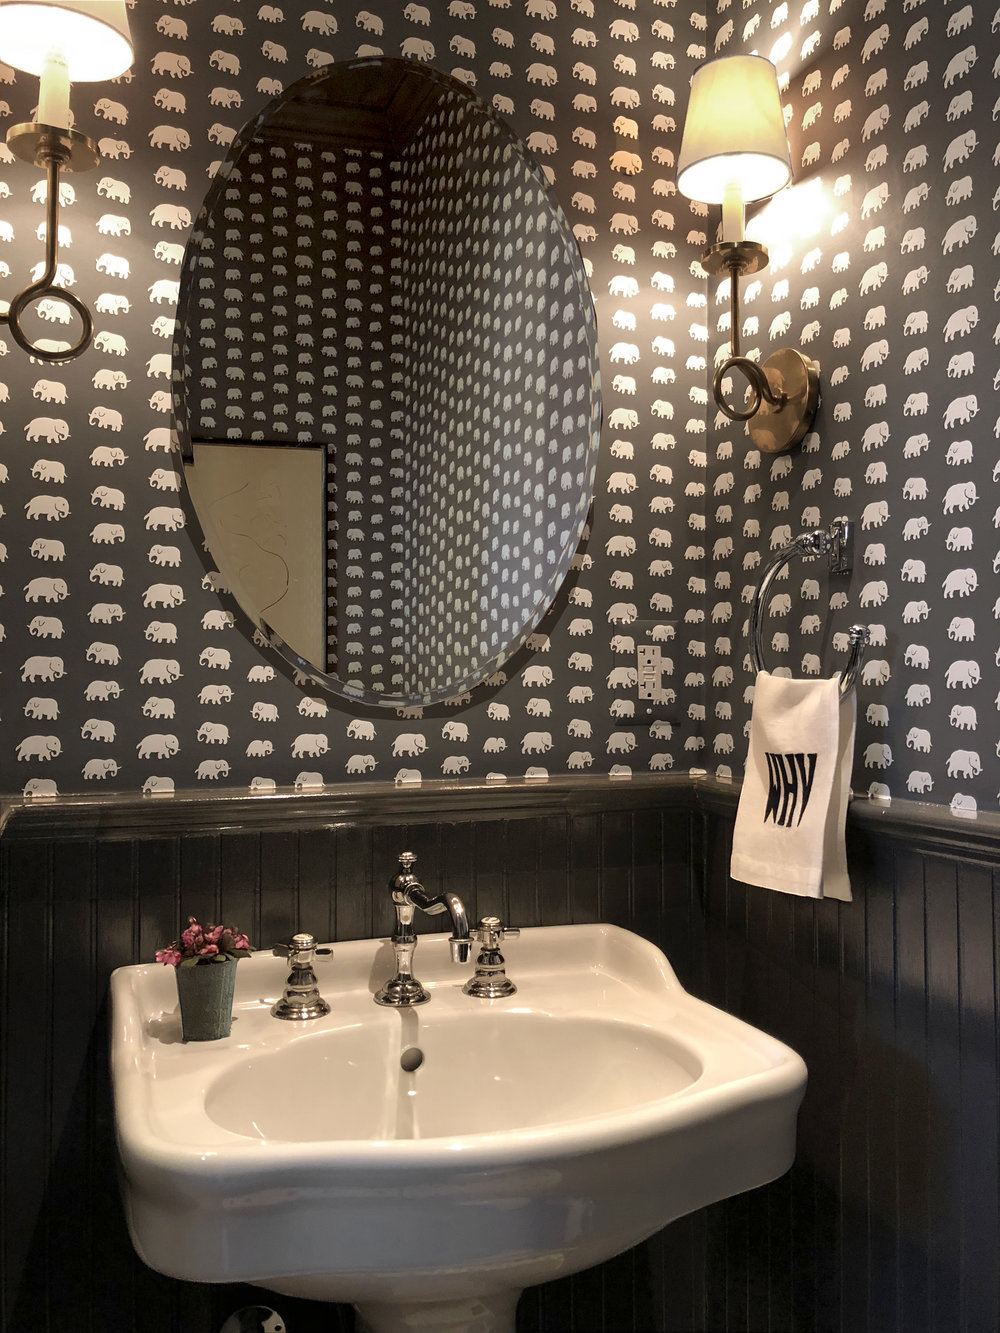 Jones-Rowan-Studio_Interior-Design_Washington-D.C._Powder Room.jpg